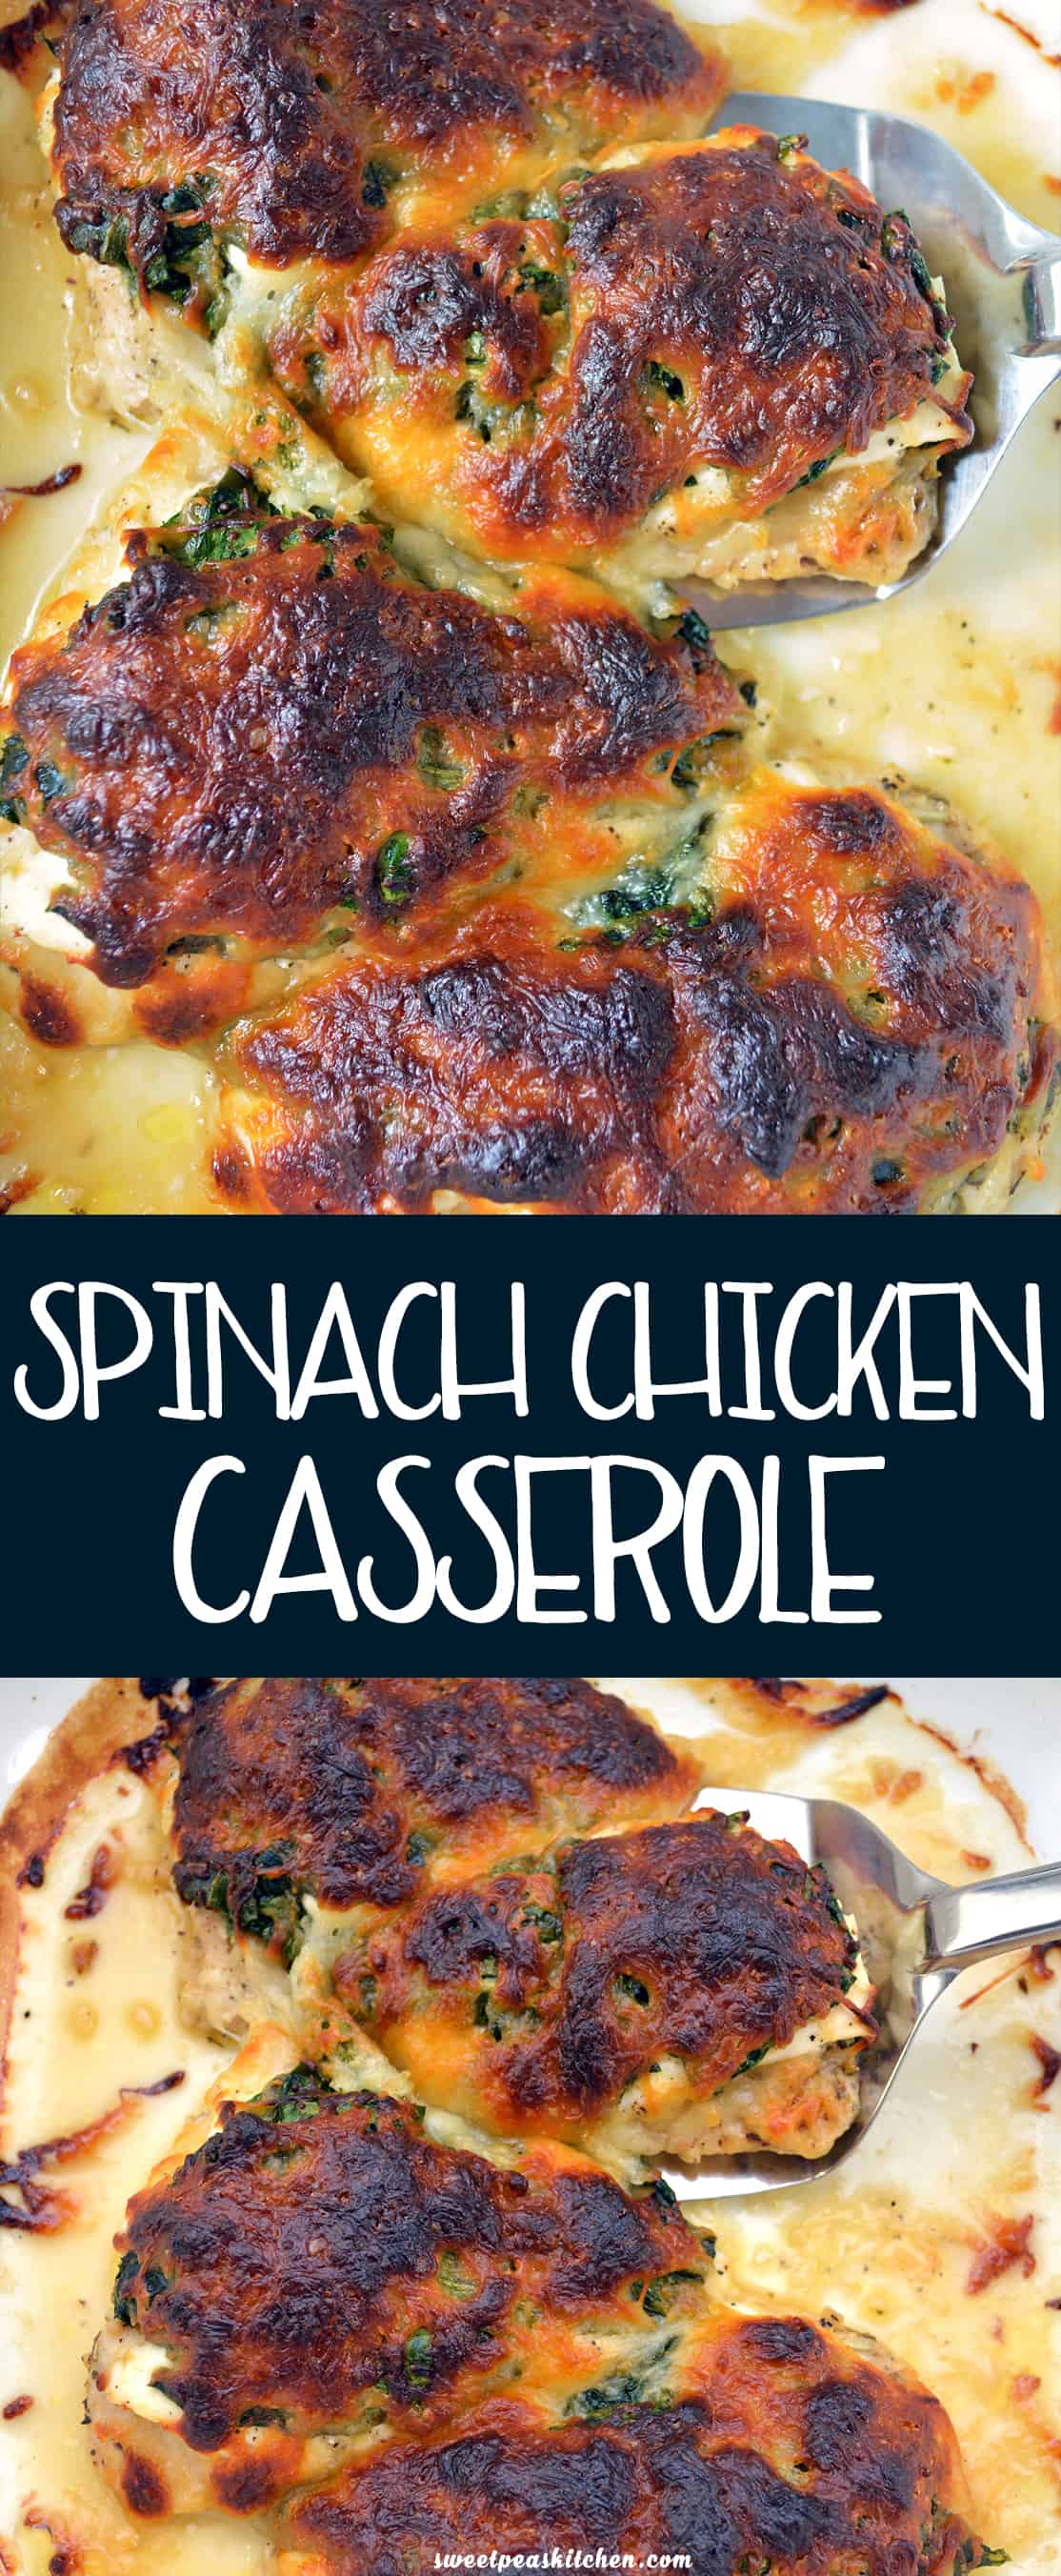 Easy Chicken Casserole with Spinach